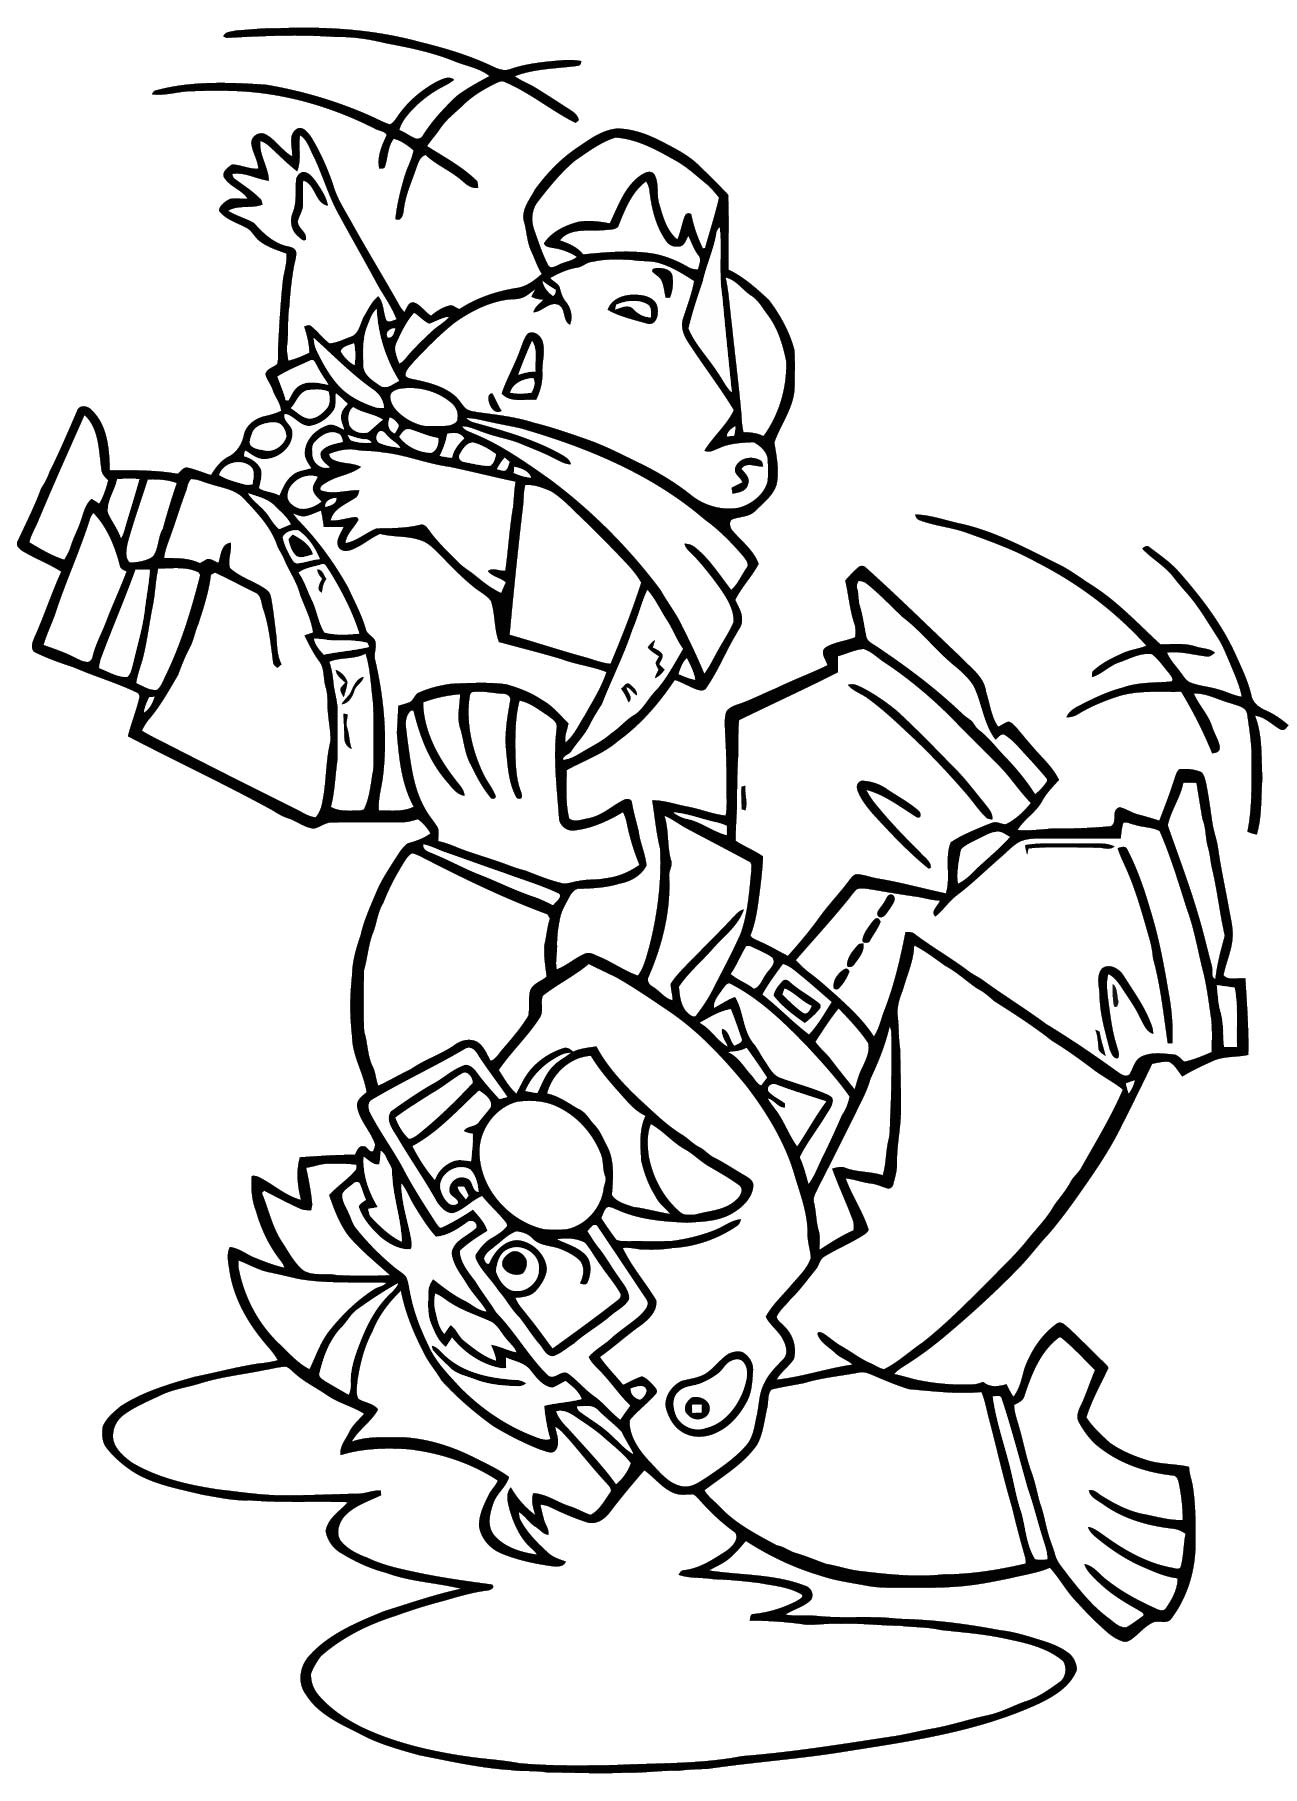 Disney Pixar Up Coloring Pages 07